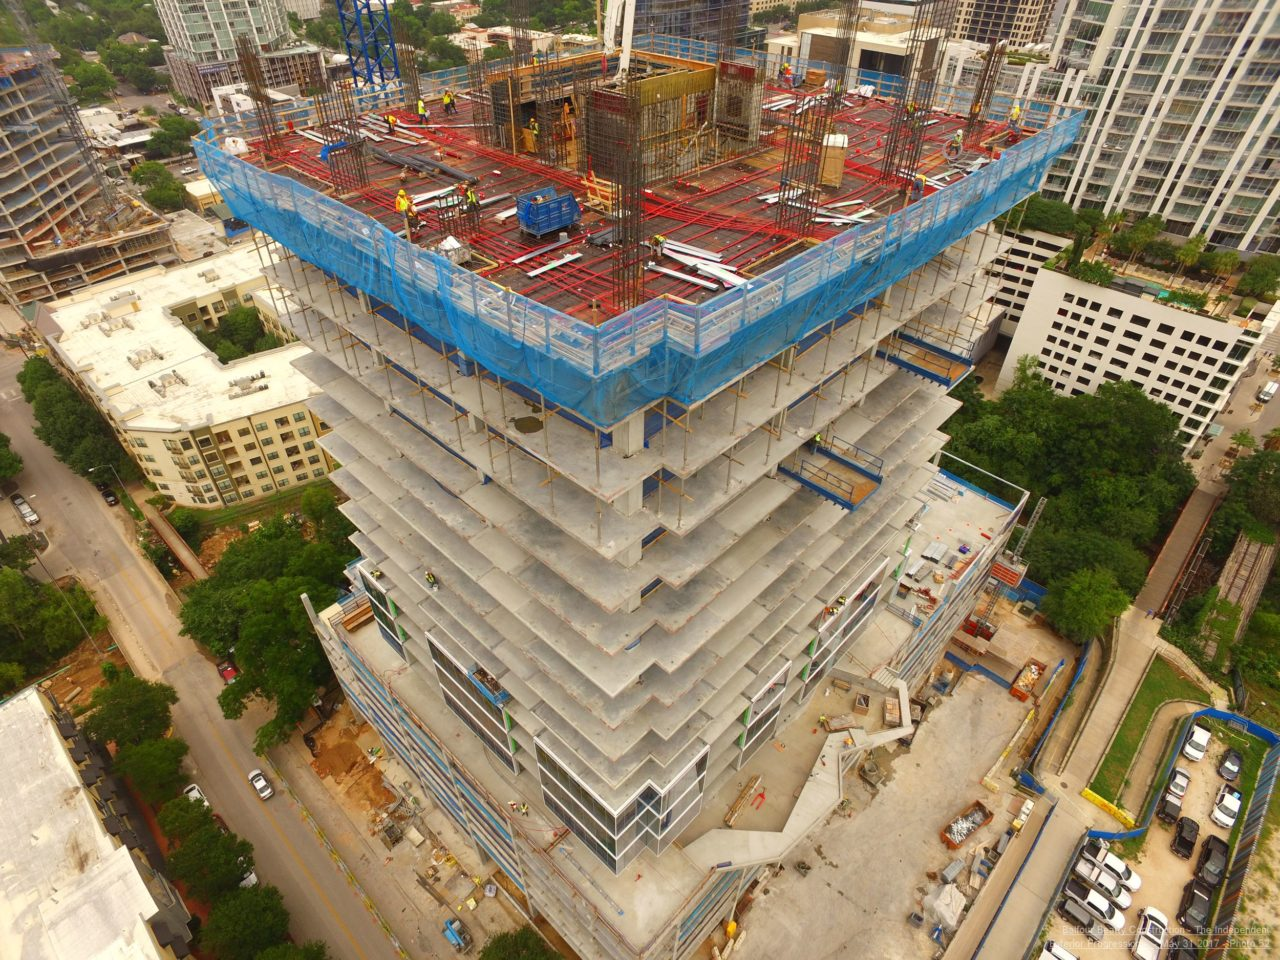 Multivista construction site documentation by drone/UAV